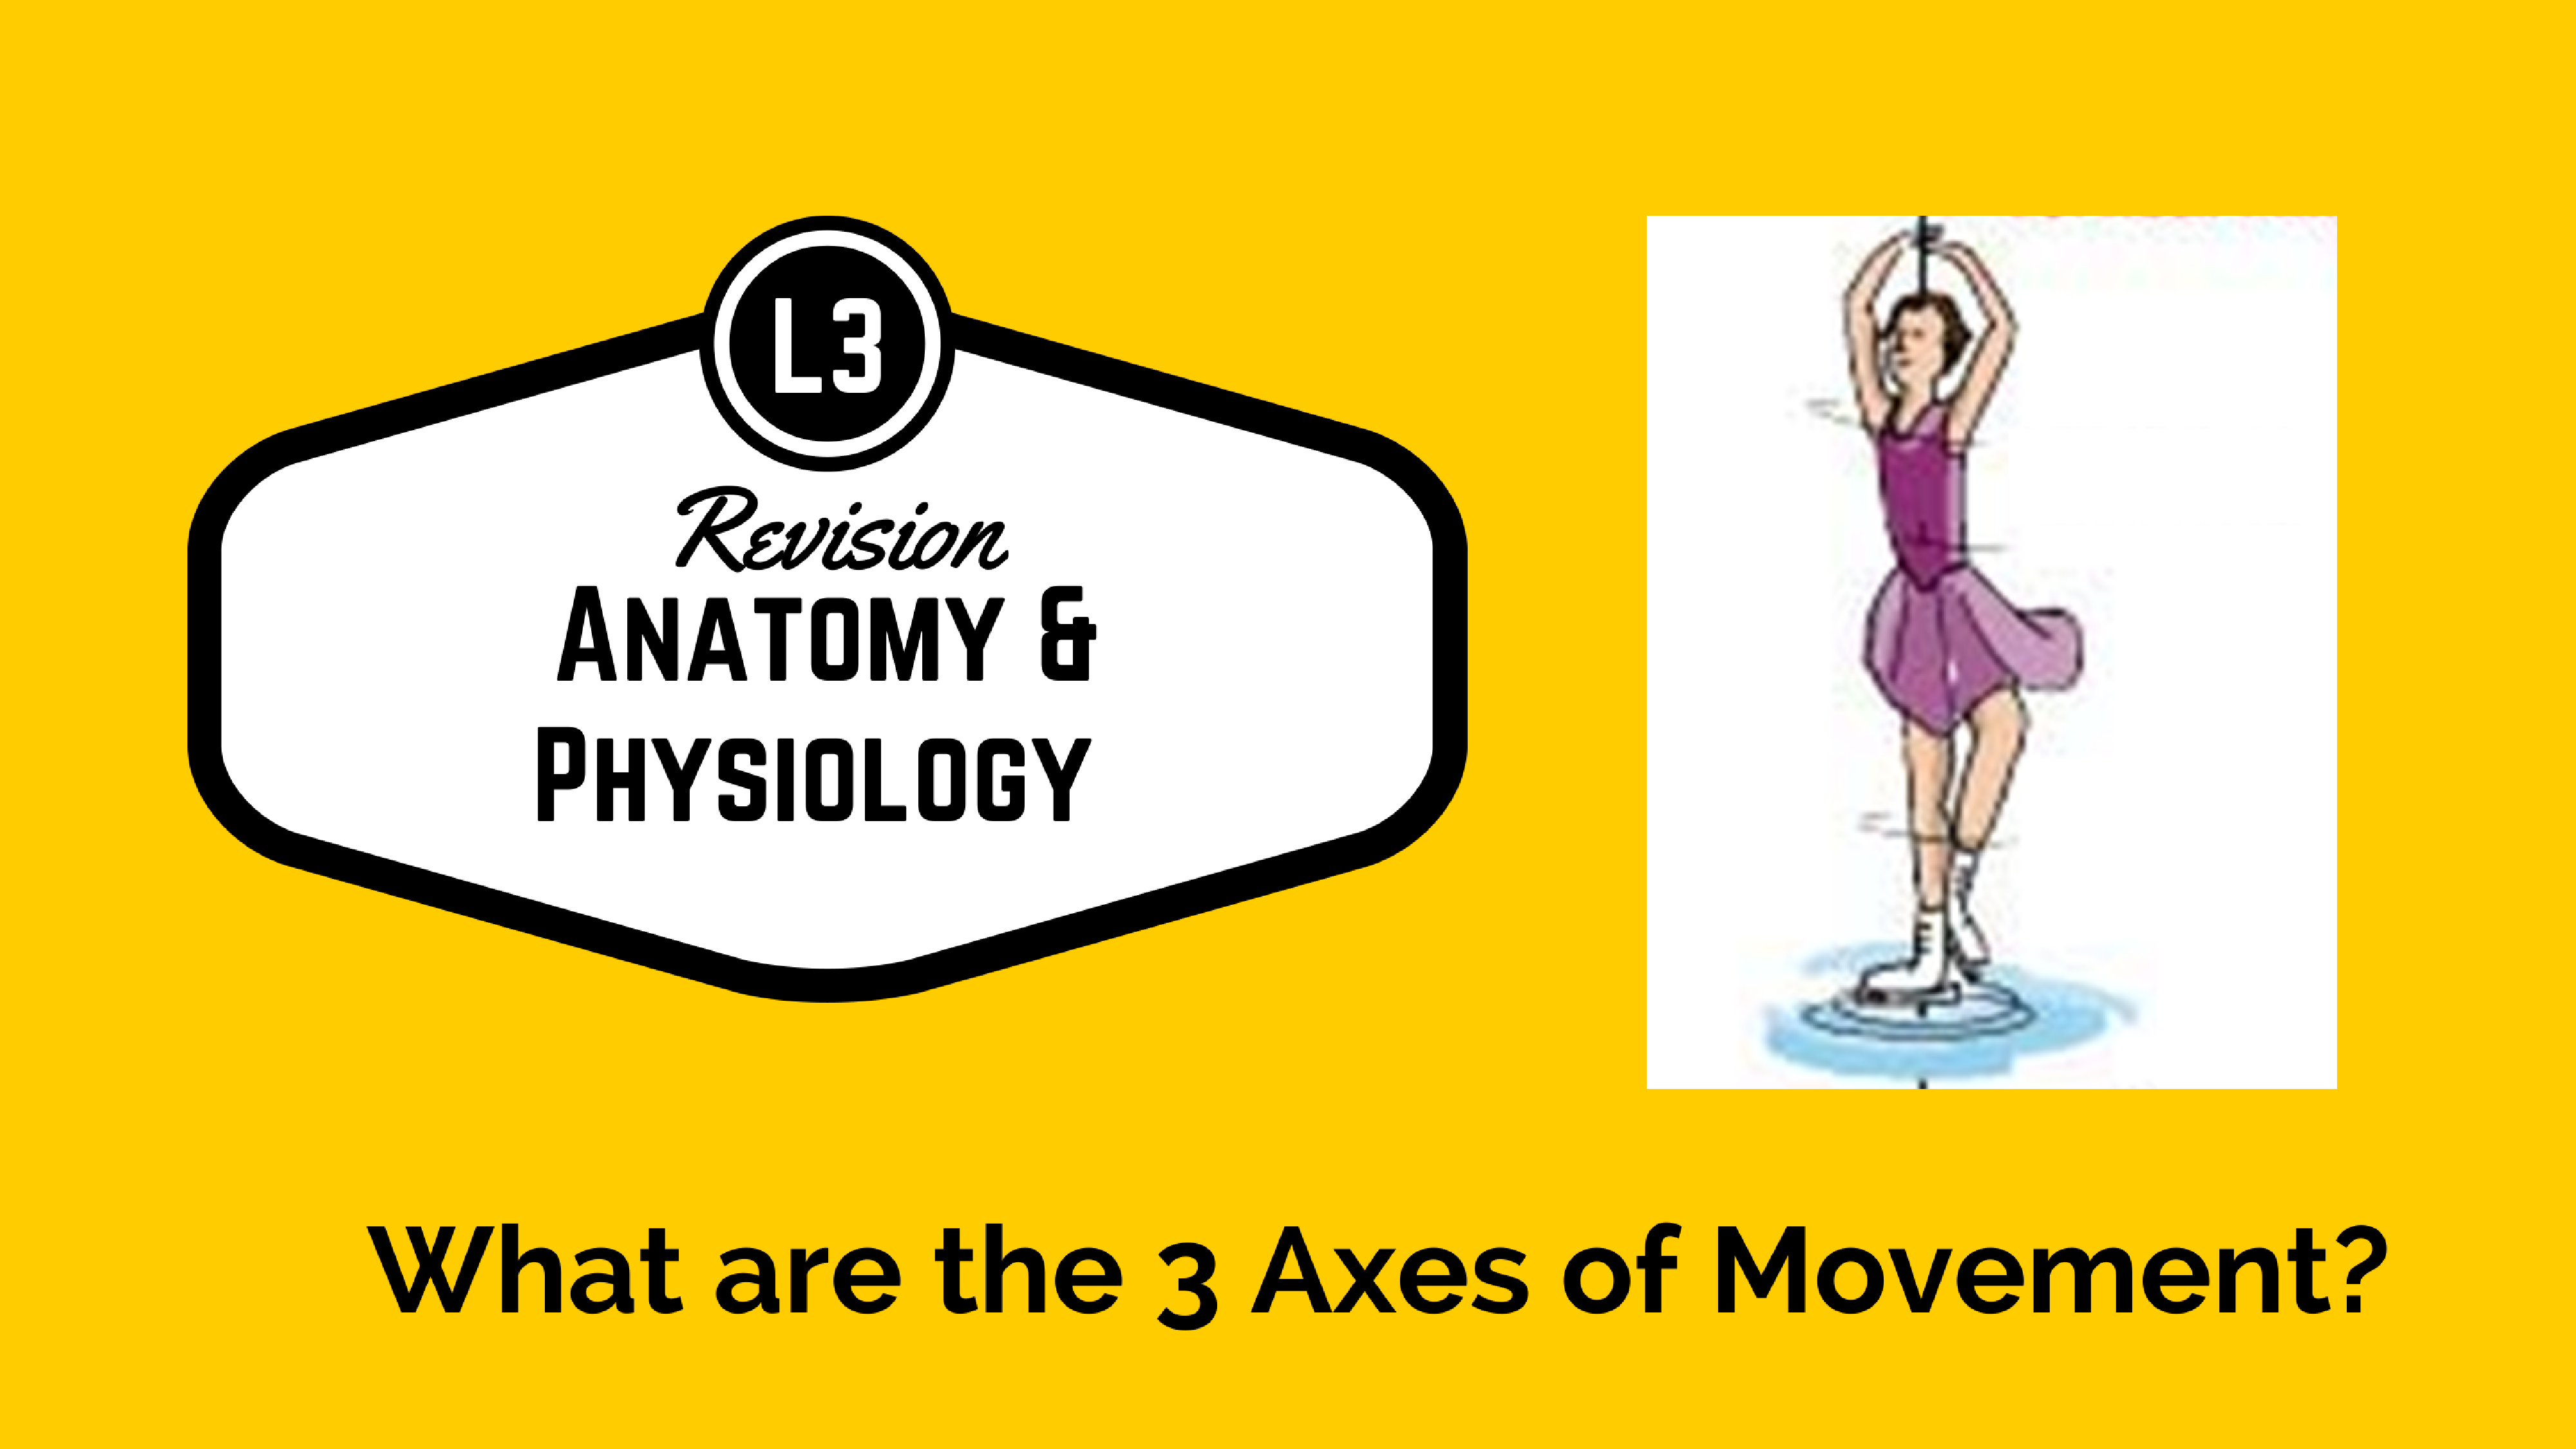 what are the 3 axes of movement